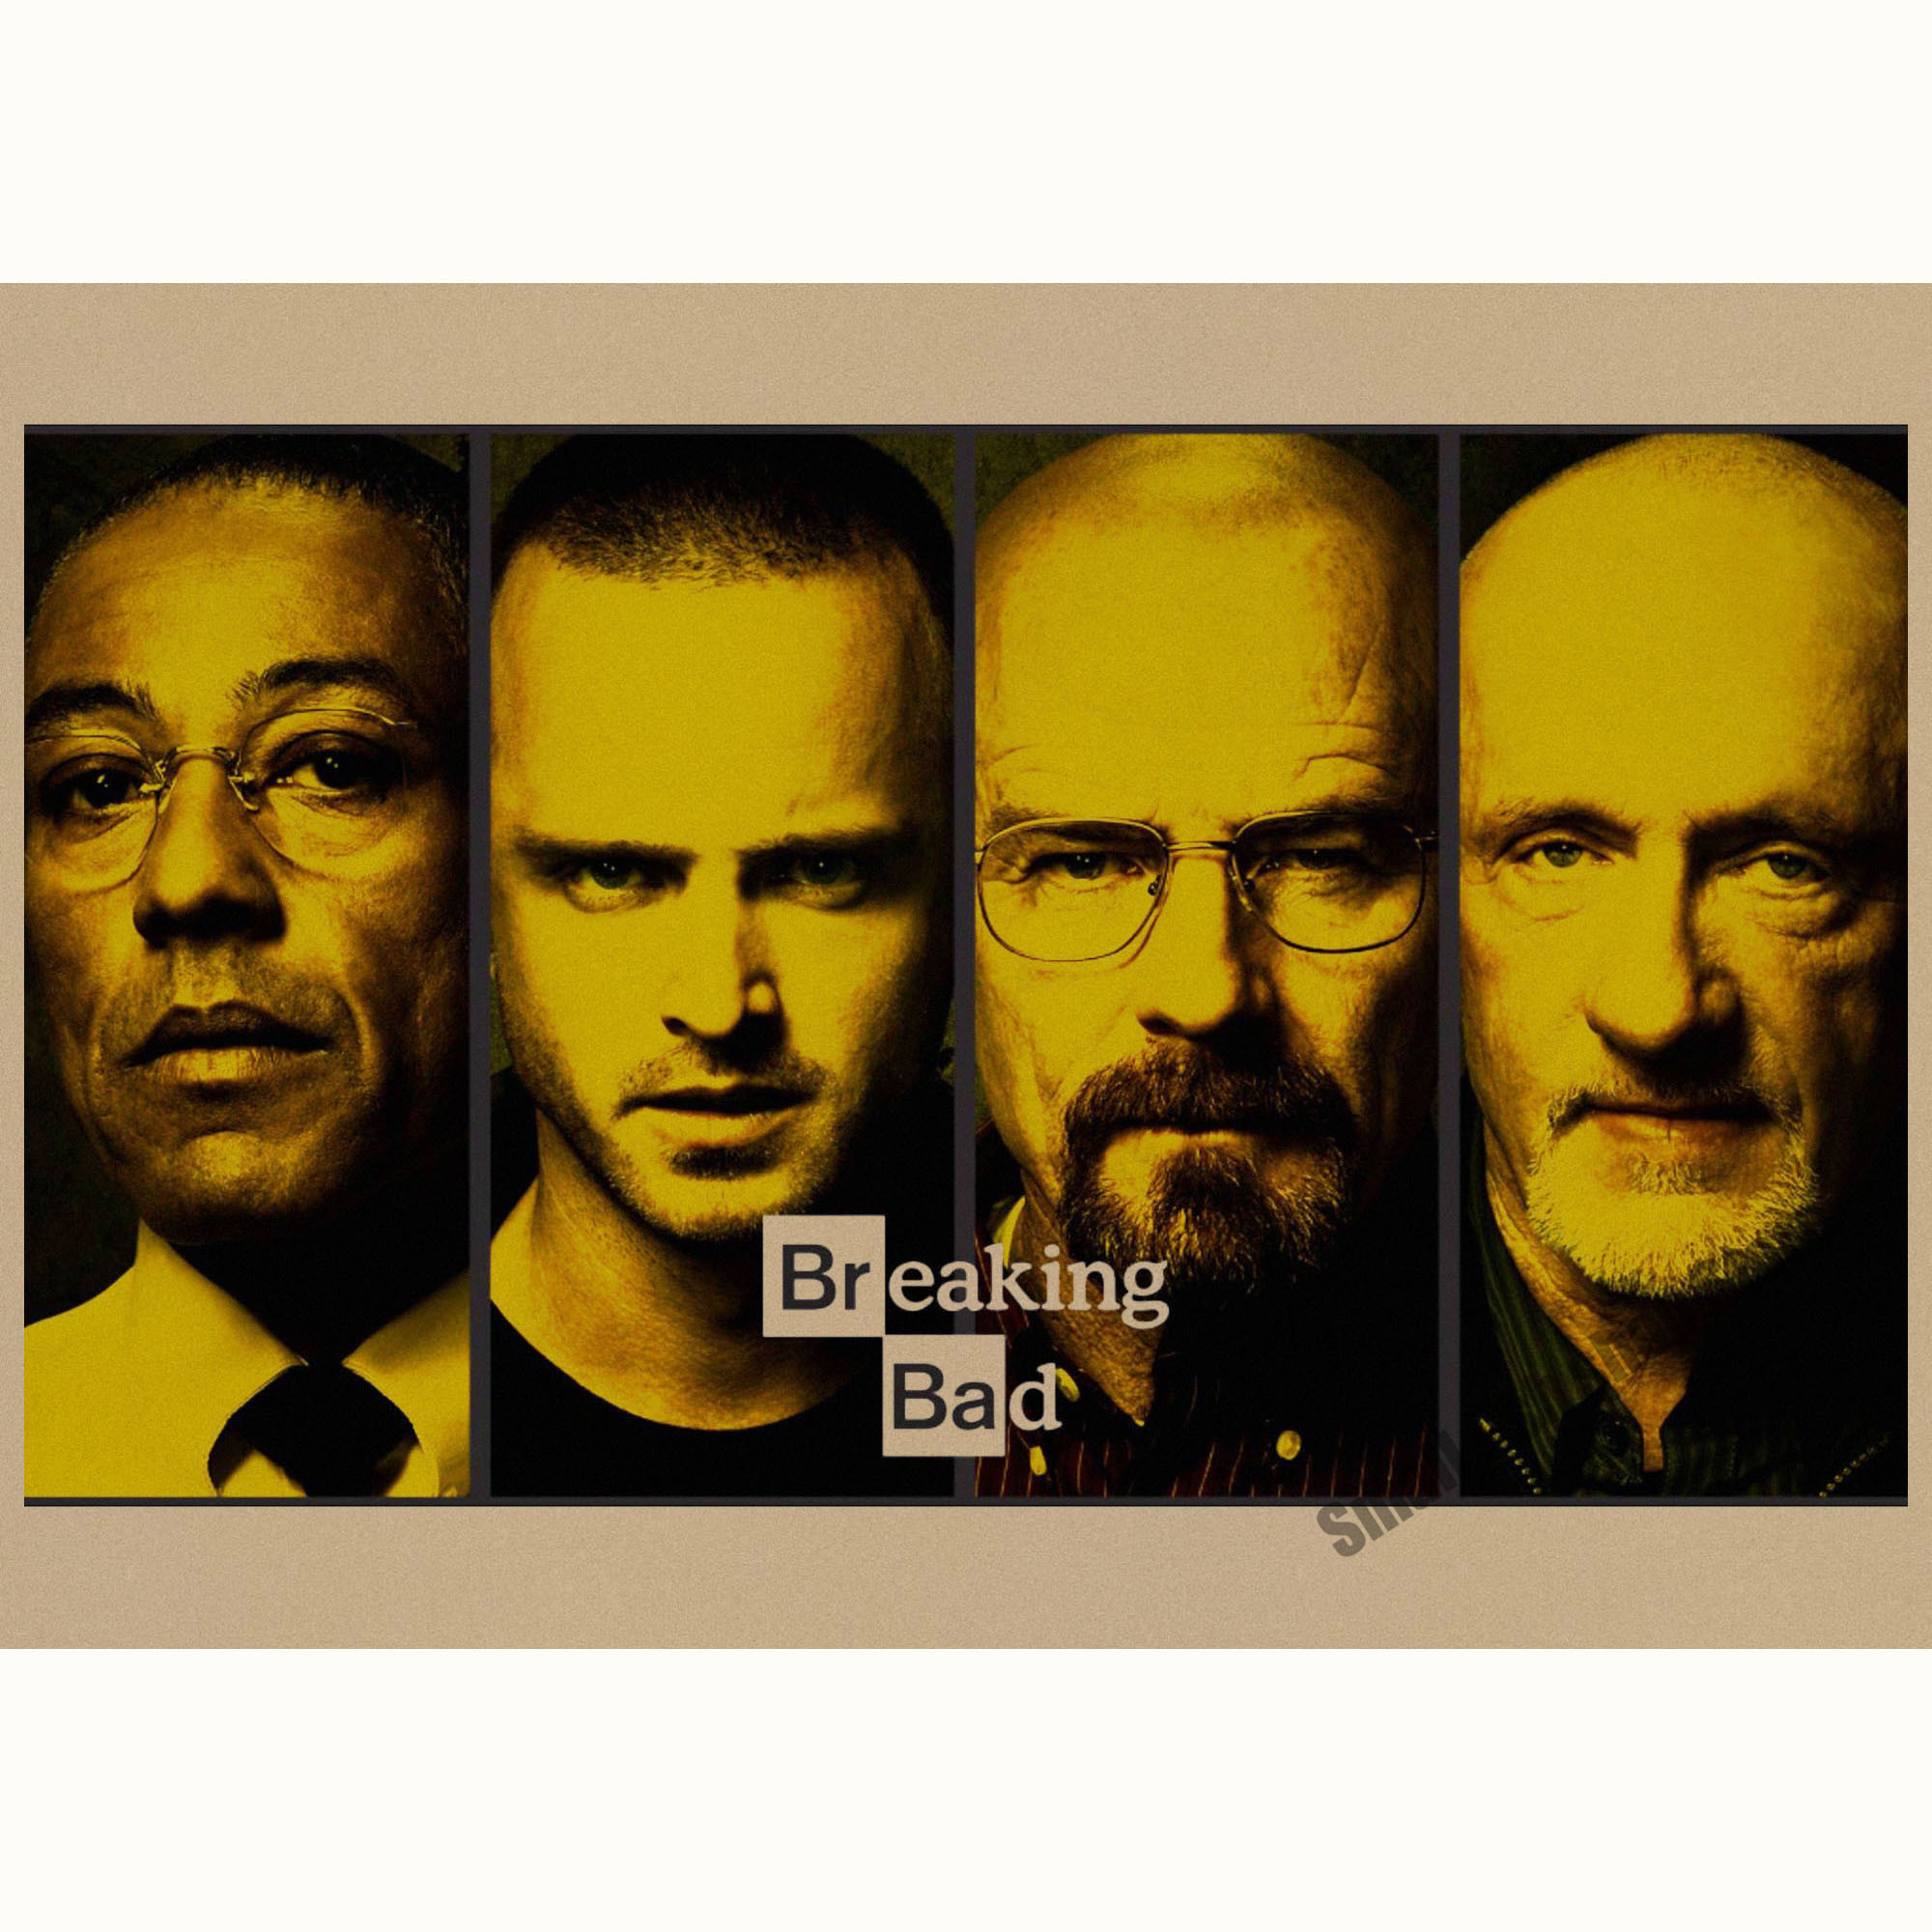 Breaking bad movie retro poster retro kraft paper bar cafe home breaking bad movie retro poster retro kraft paper bar cafe home decor painting wall sticker in wall stickers from home garden on aliexpress alibaba amipublicfo Choice Image